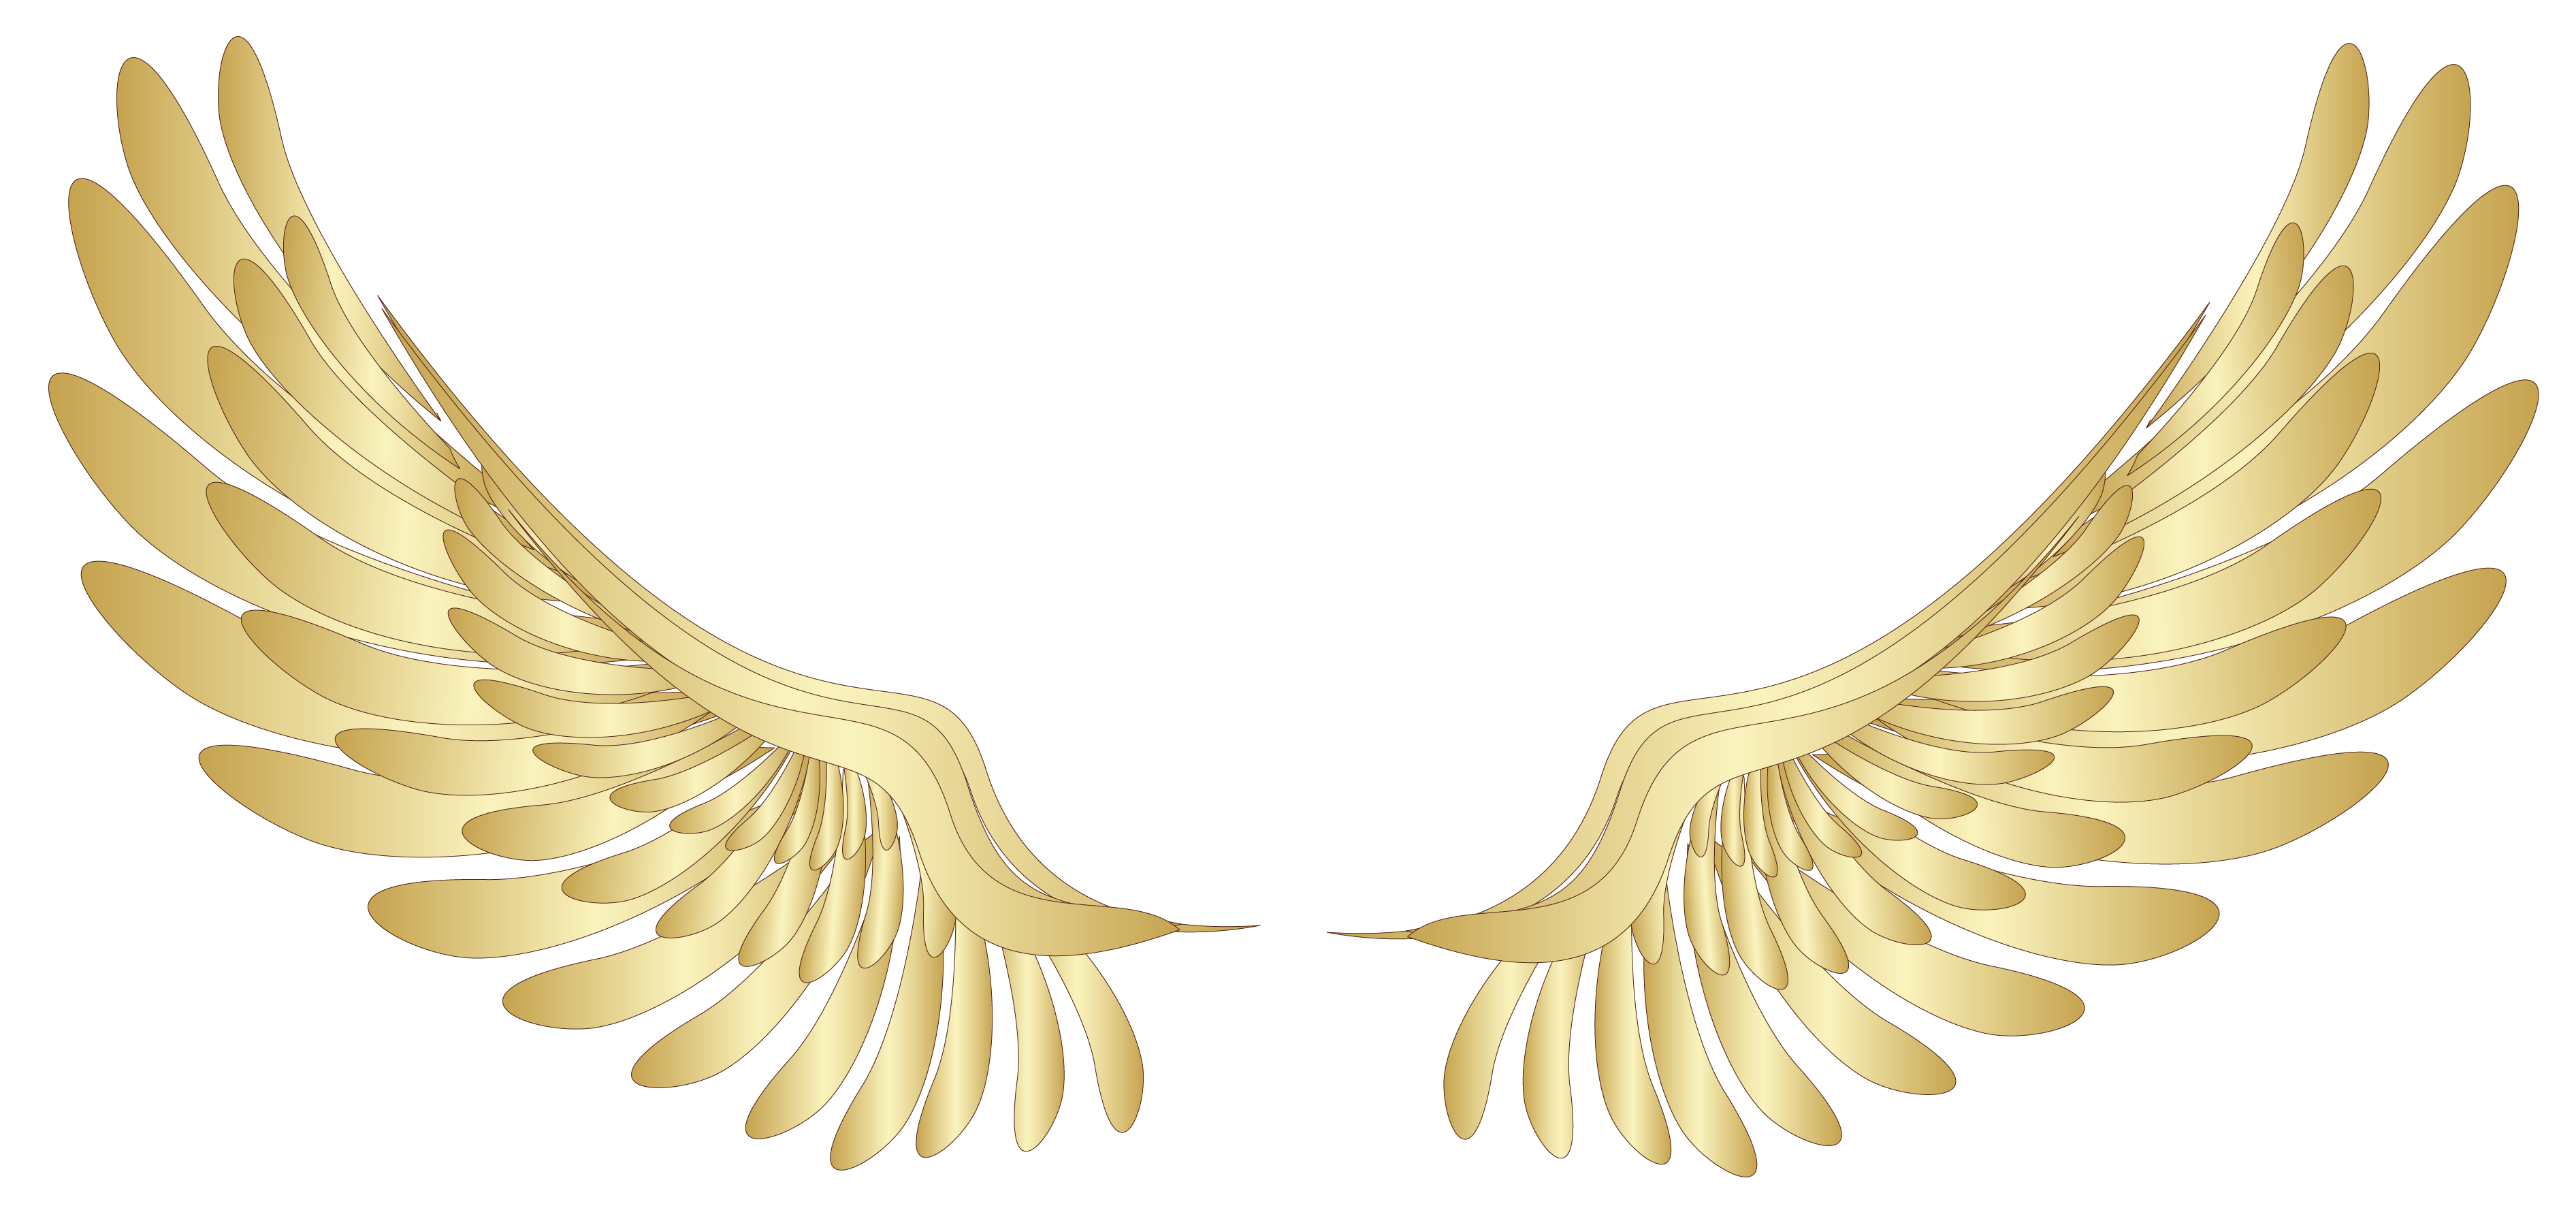 svg transparent stock Wing clipart. Golden wings decor png